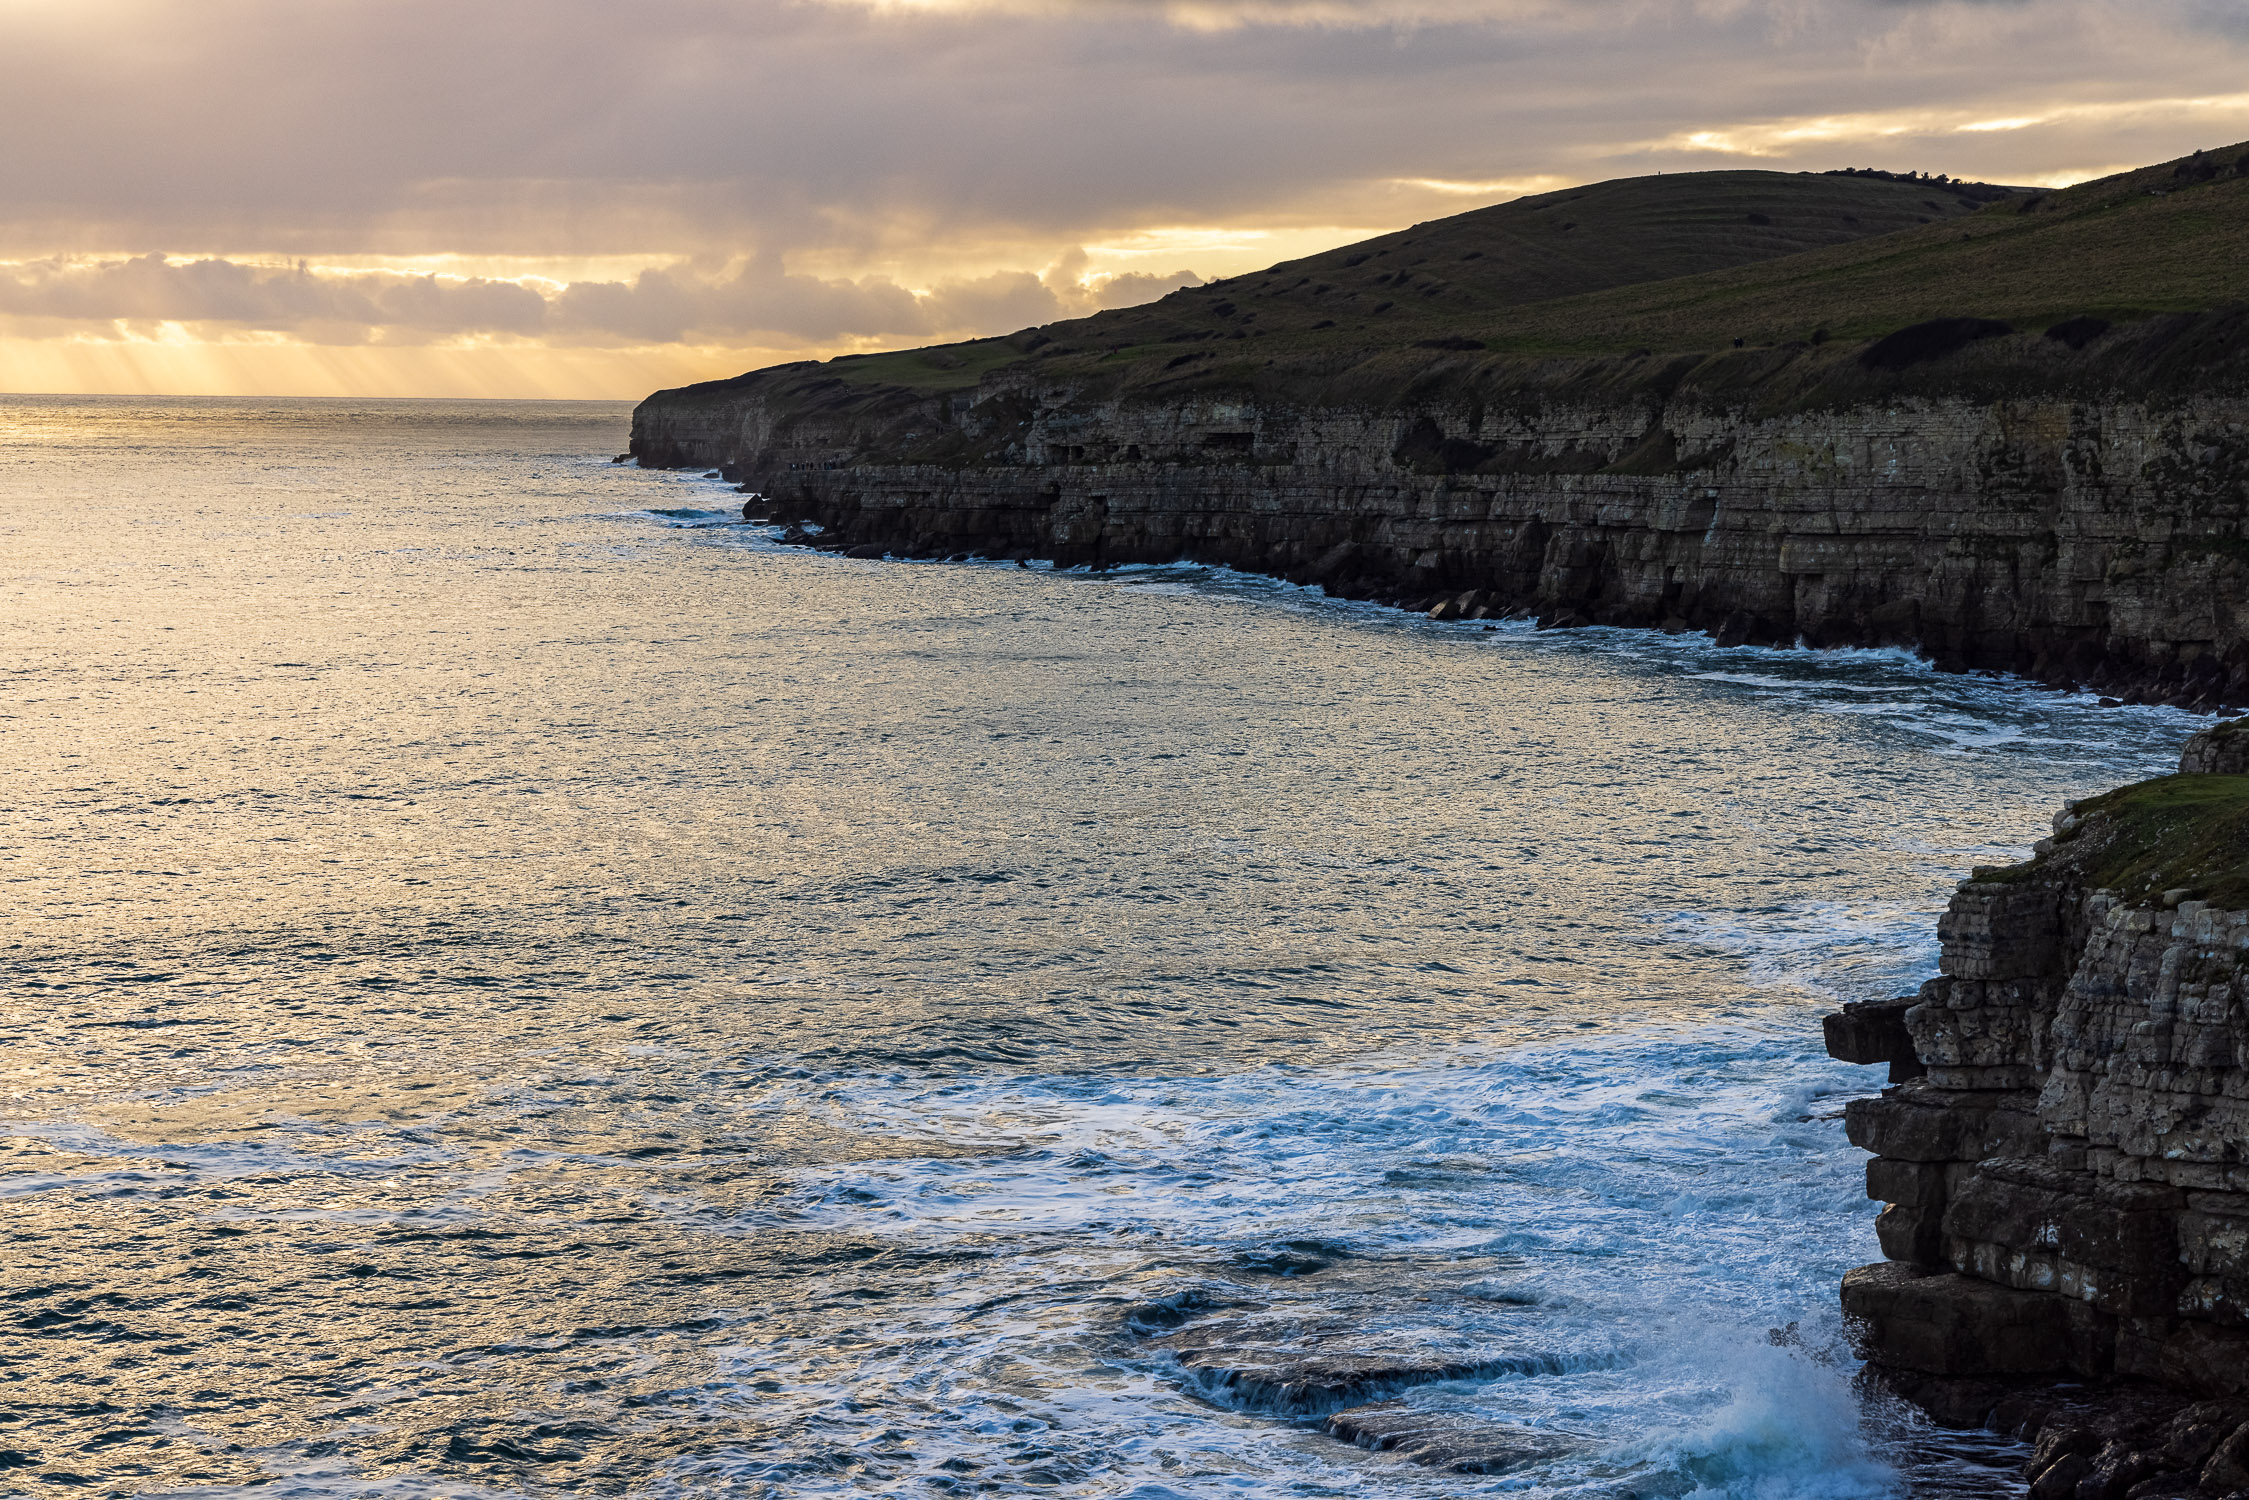 Winter light at St. Aldhelm's Head